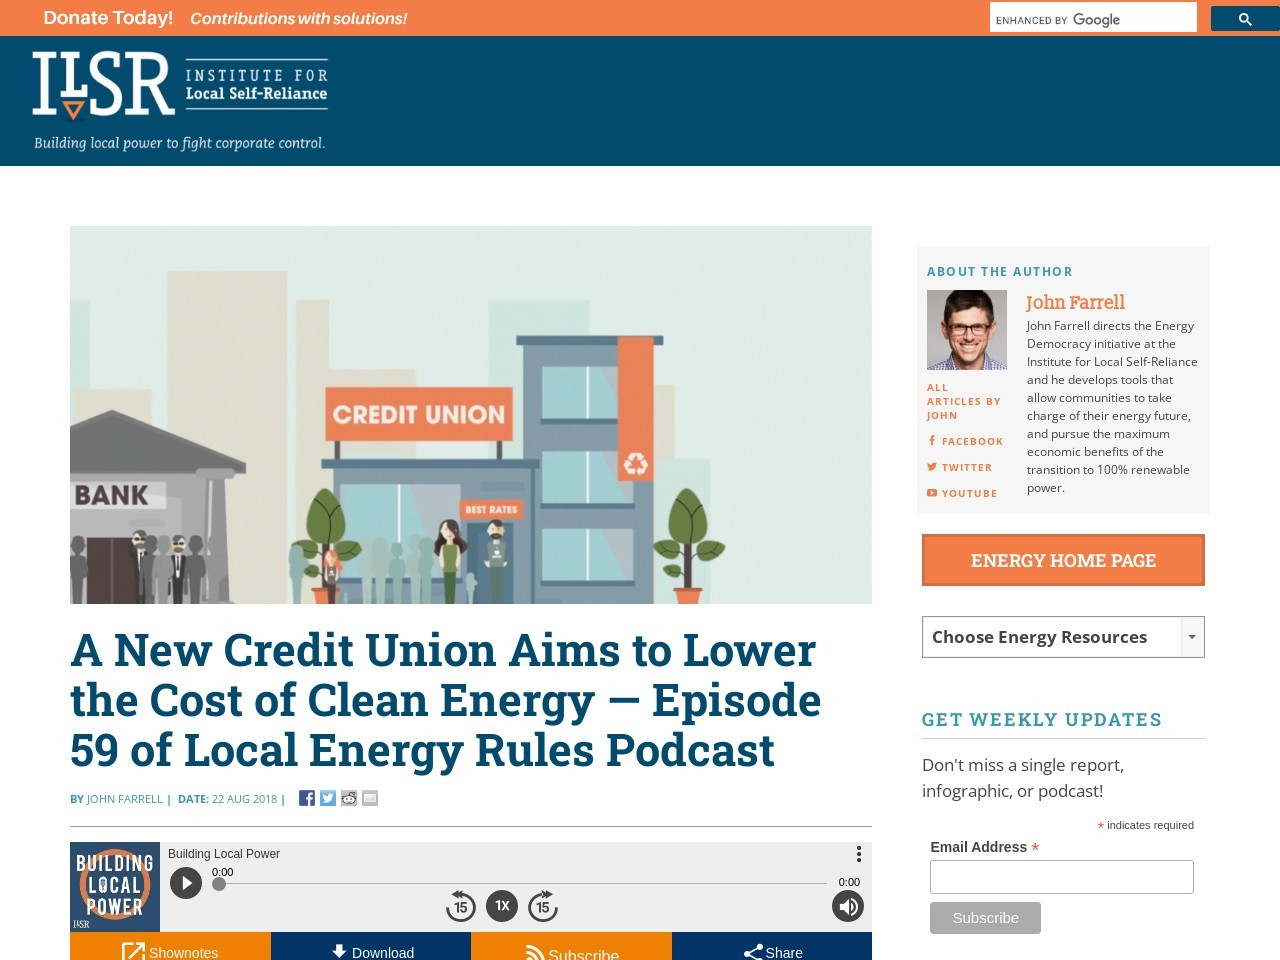 A New Credit Union Aims to Lower the Cost of Clean Energy